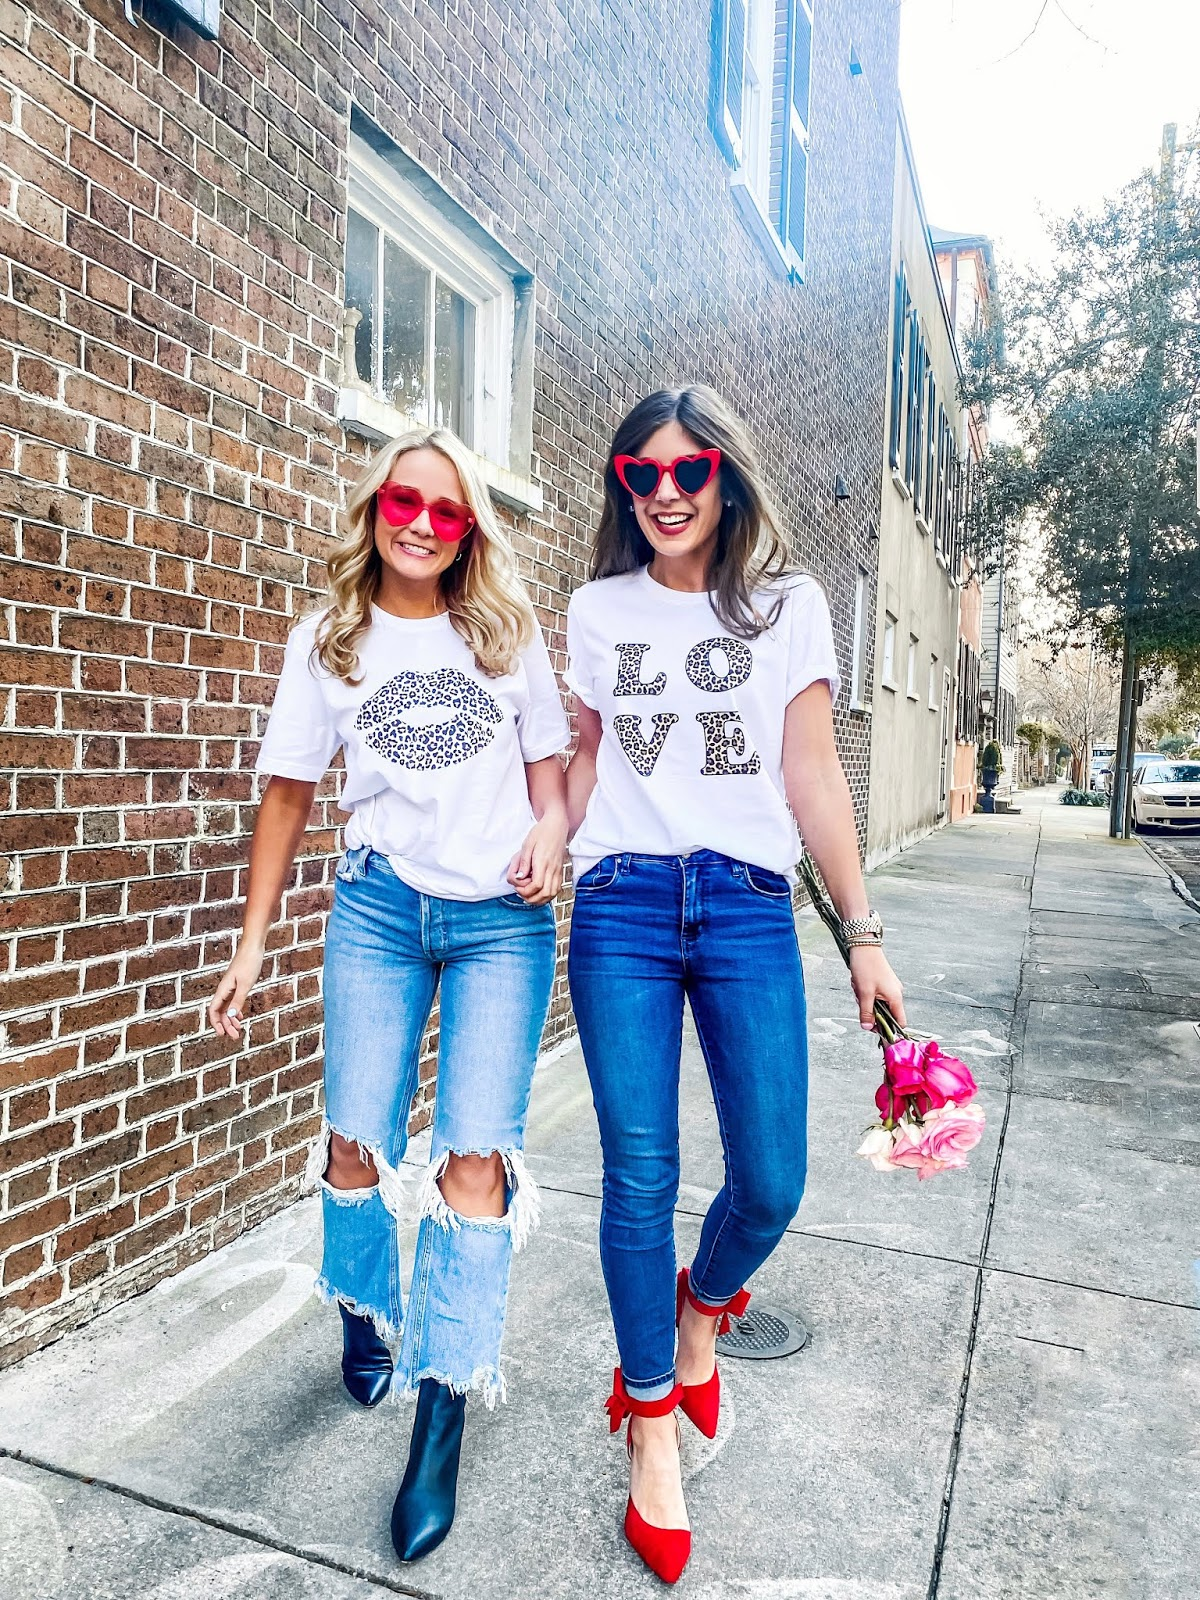 Best Valentine's Day Graphic Tees - Chasing Cinderella